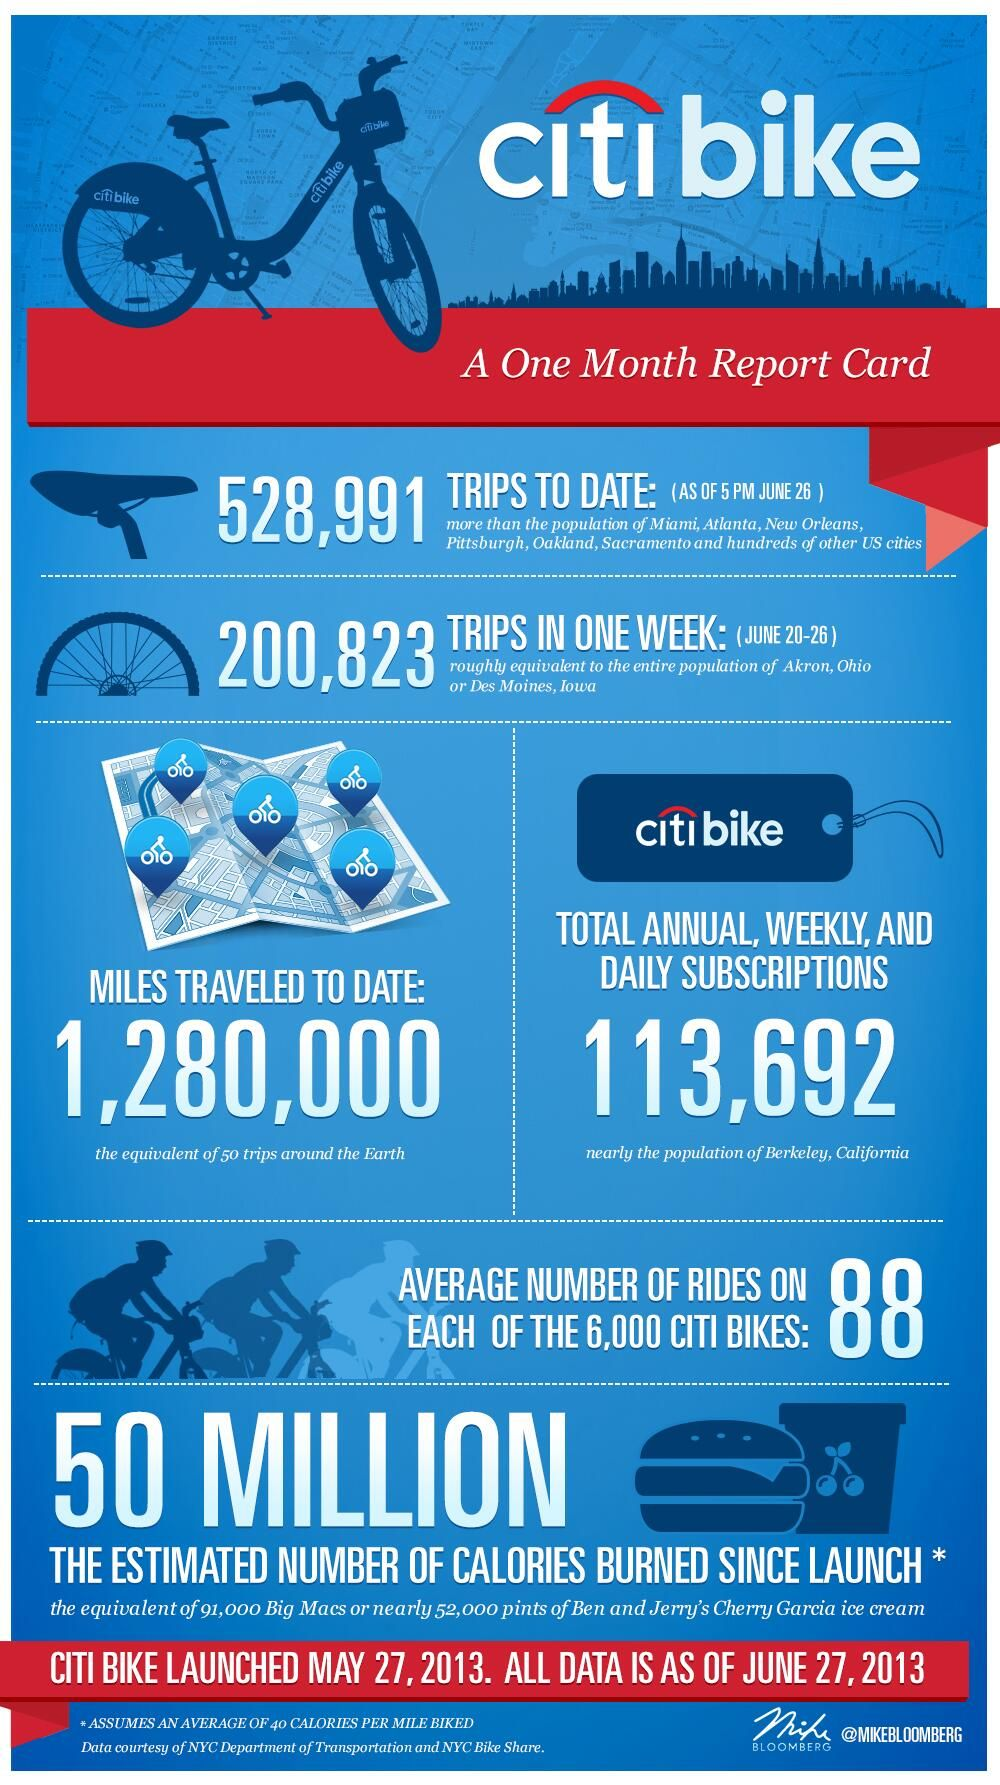 Pin by John De Santis on Citibike ads | Infographic, Bike, Cards Citibike Maps on nyc school district map, bronx zip code map, proof of success map, hubway map, nyc bus map, nyc train map,